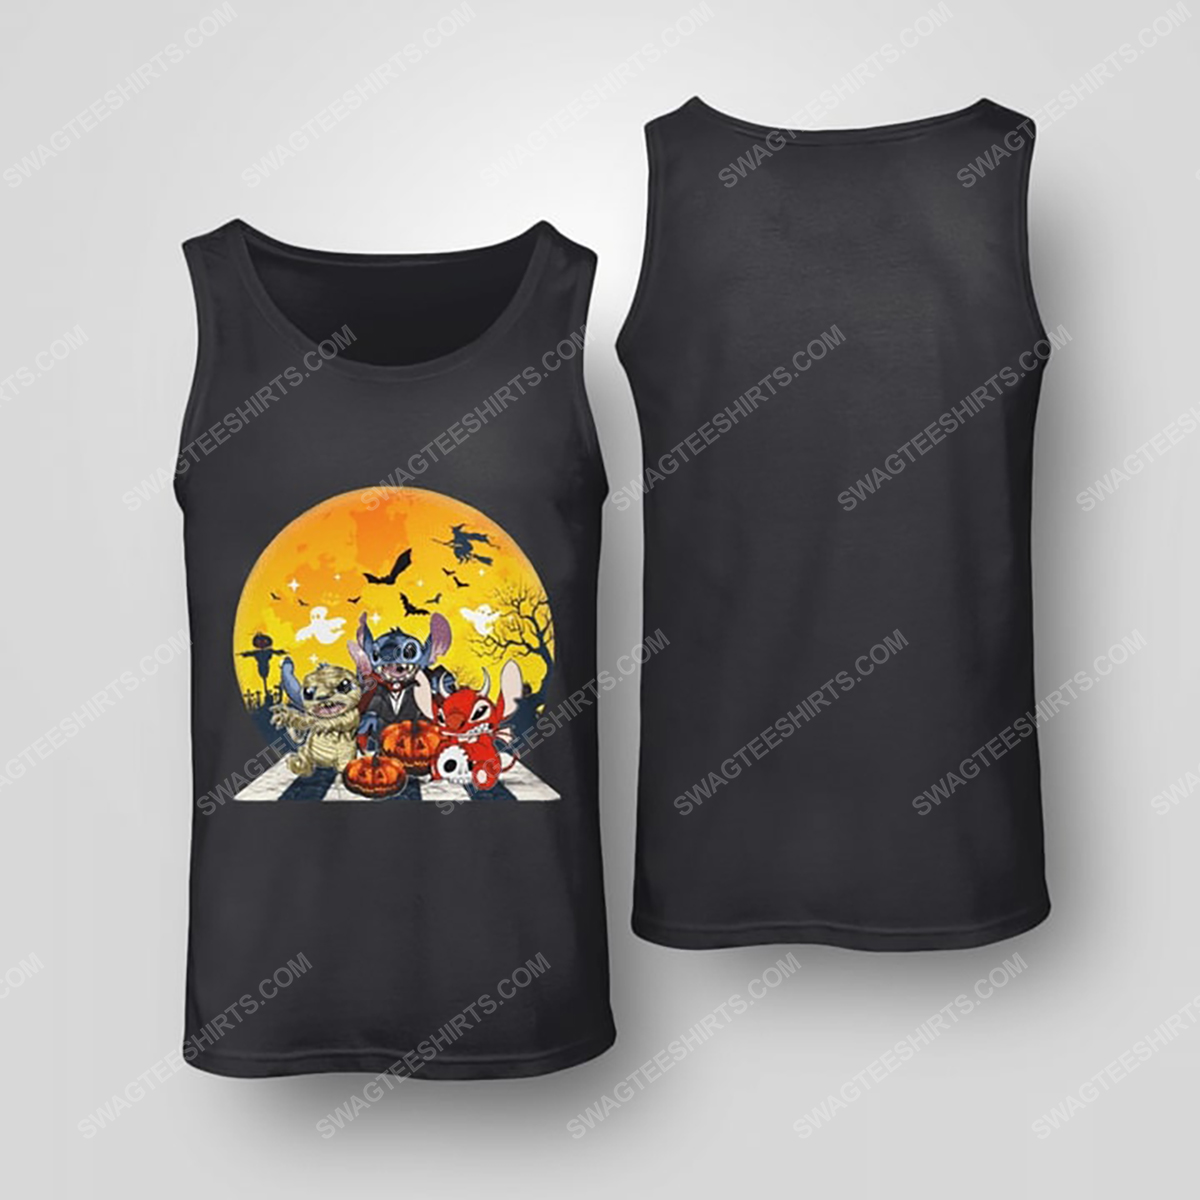 Halloween night stitch cosplay horror characters tank top(1)